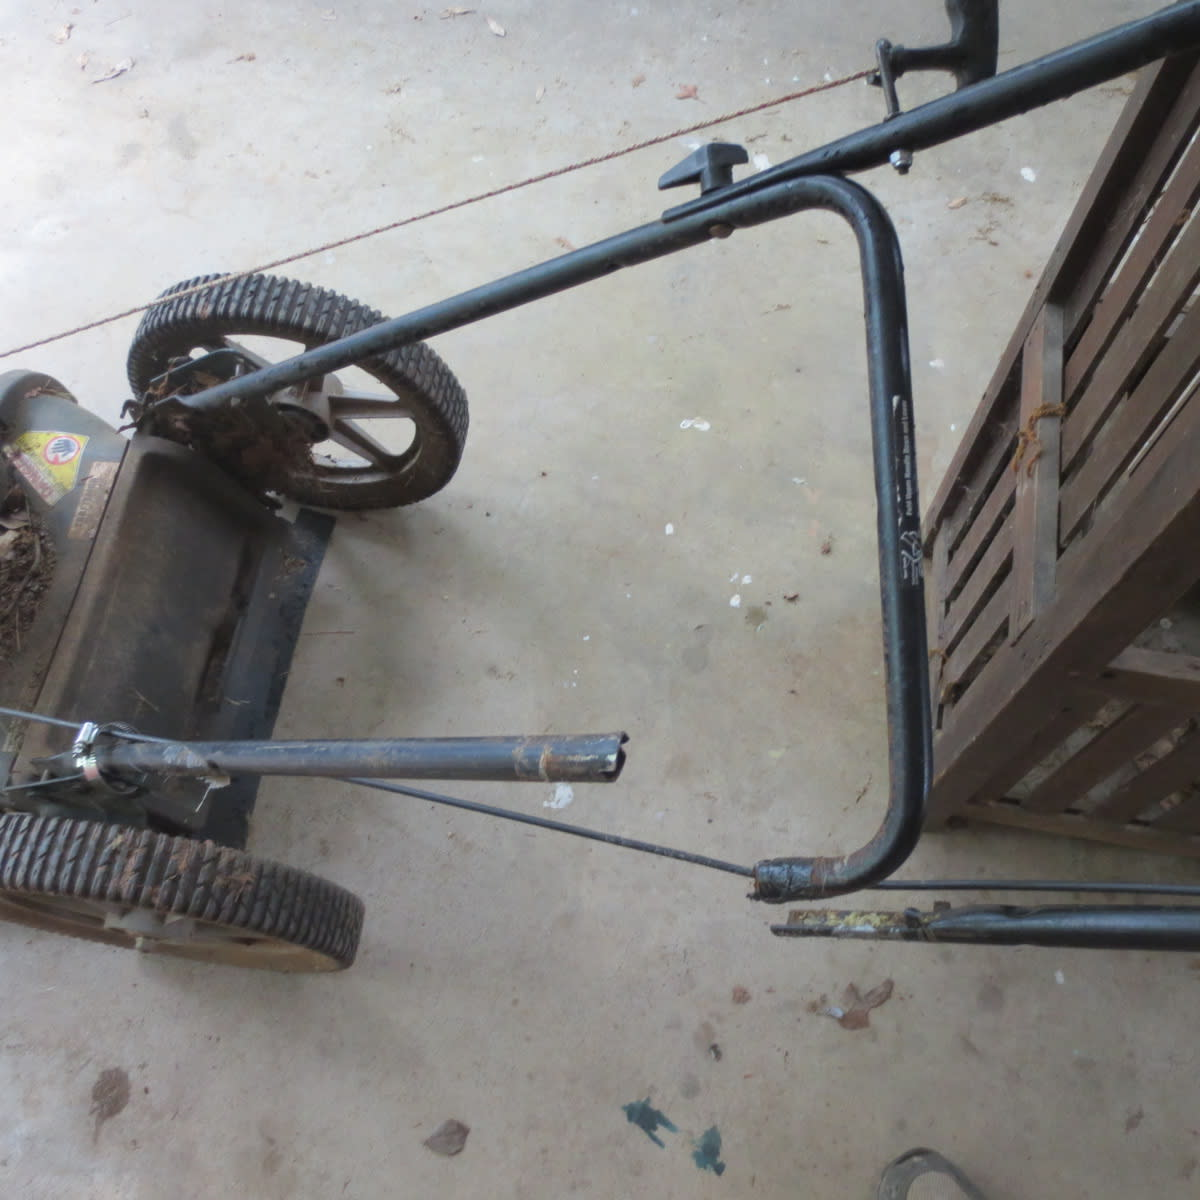 How to Fix a Lawn Mower Handle Yourself, the Cheapest Way